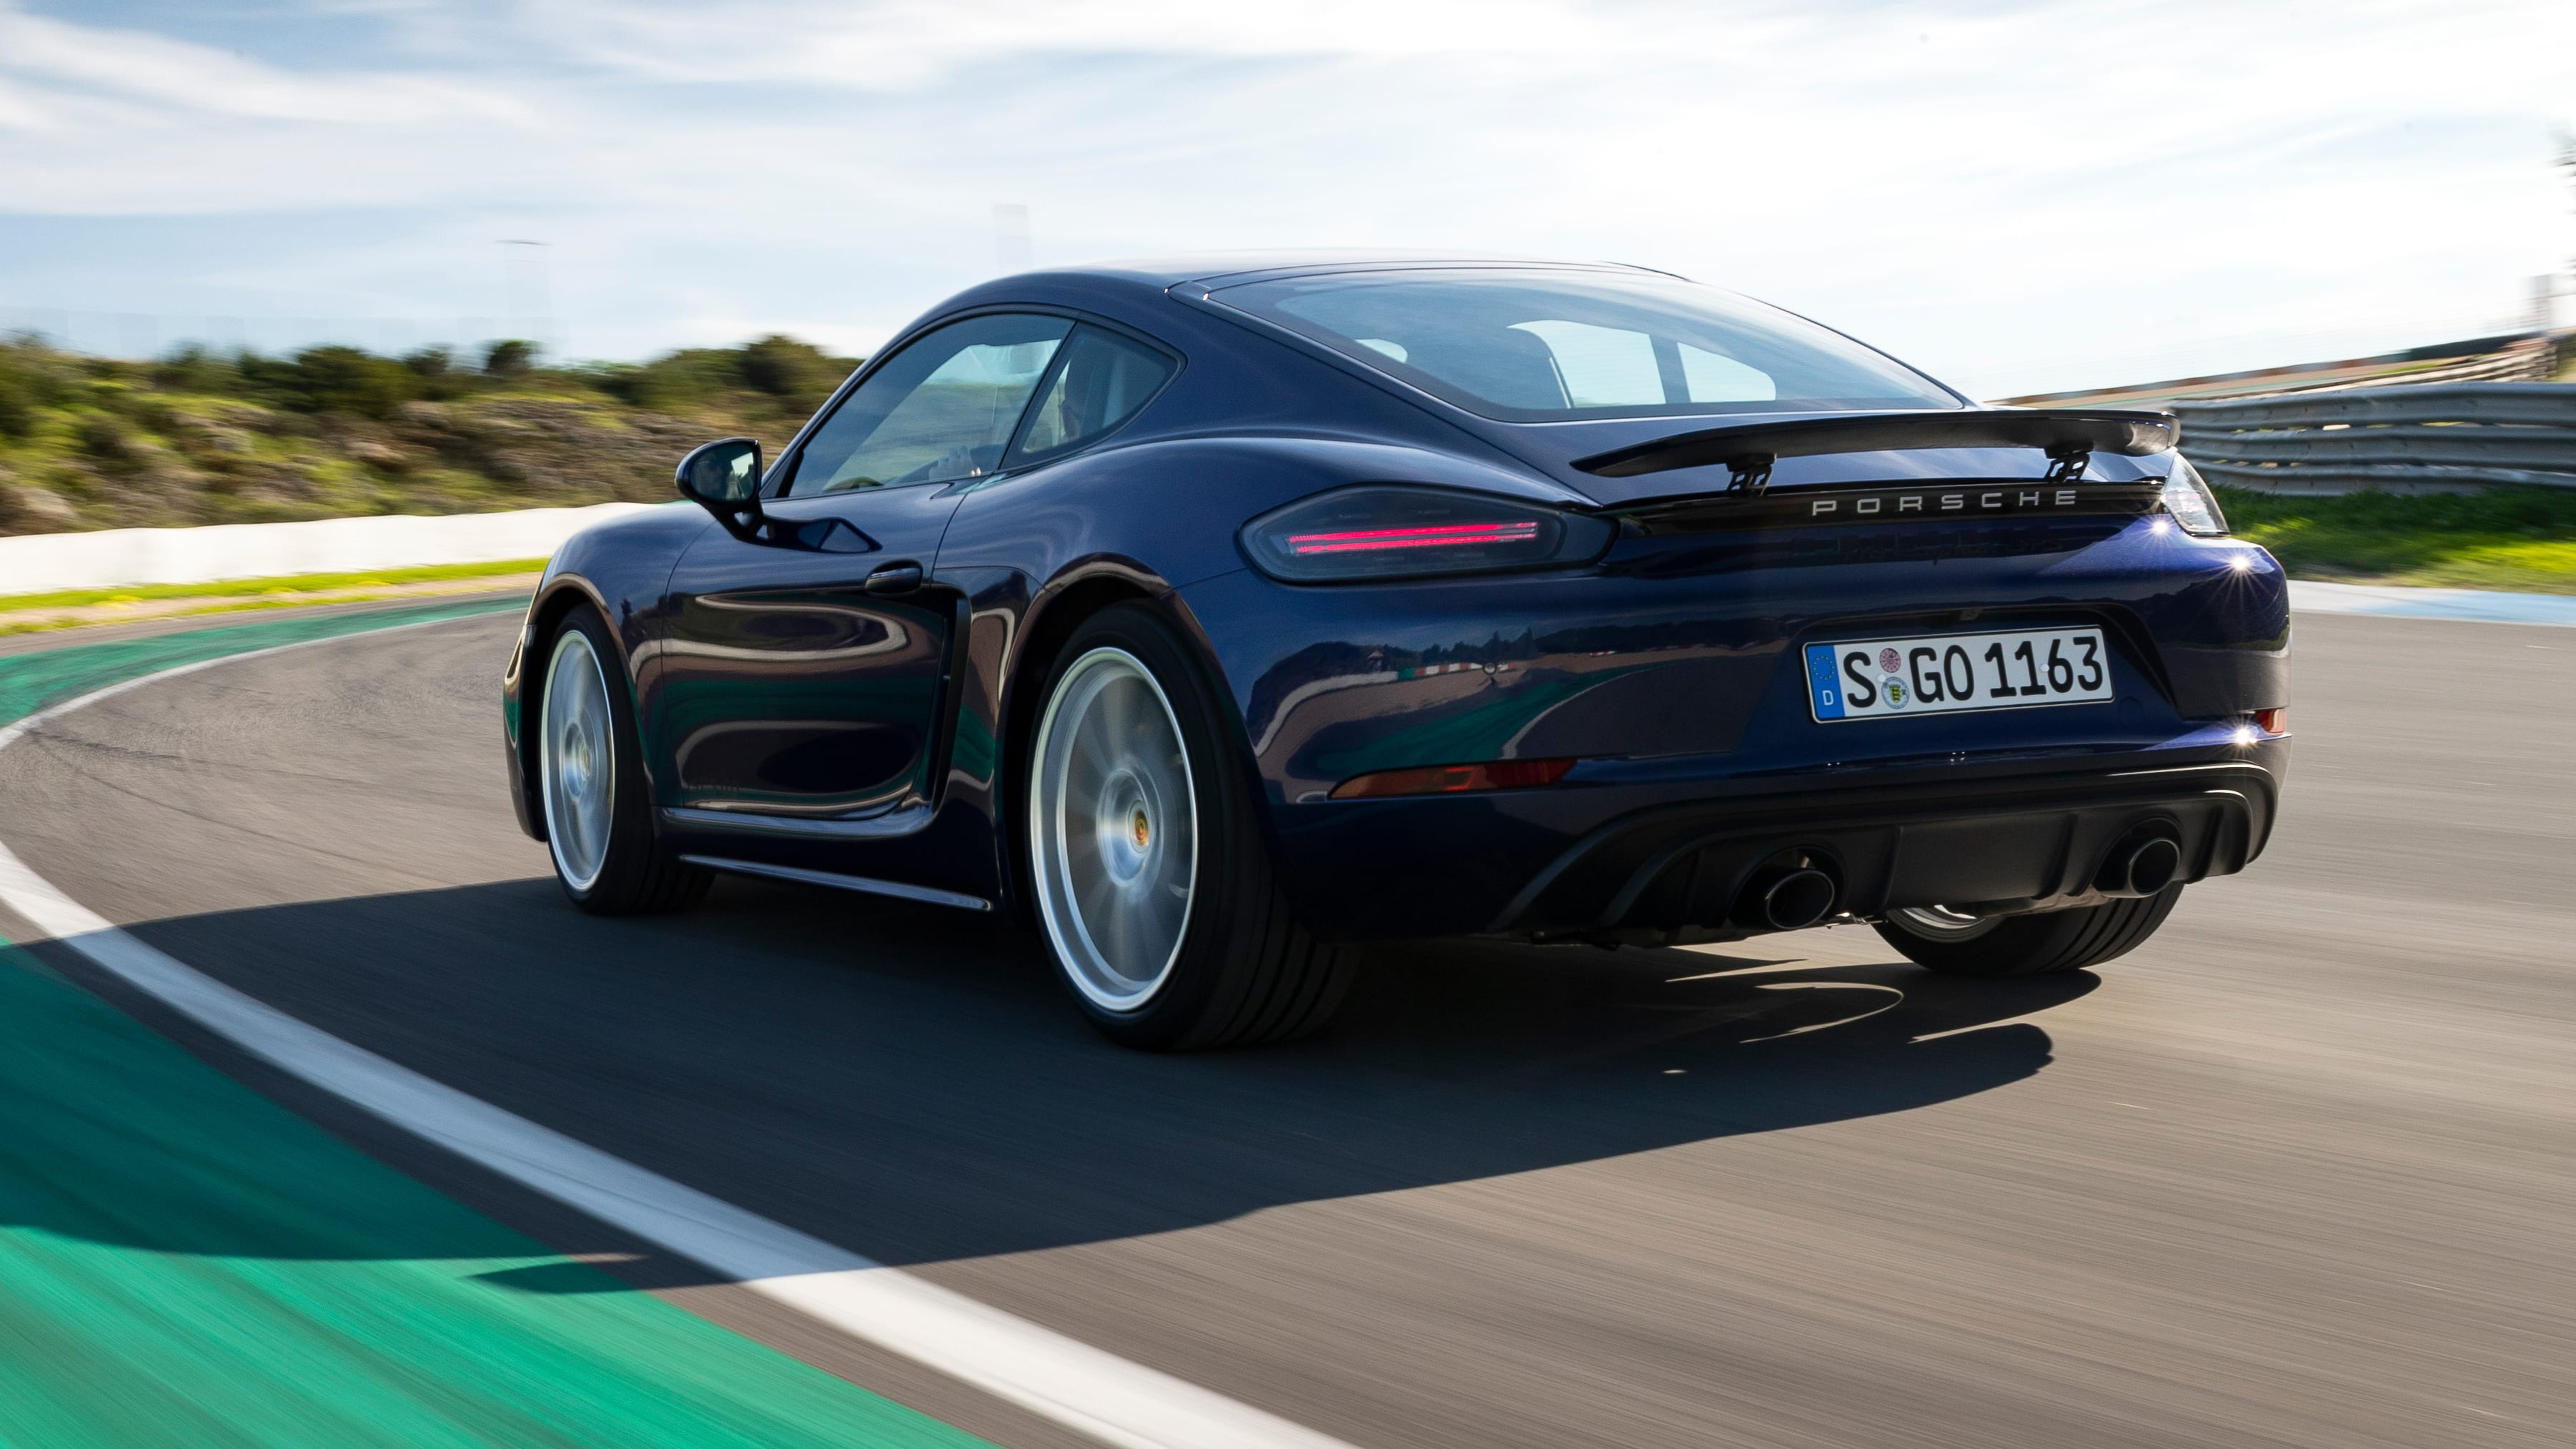 2020 Porsche 718 Cayman Boxster Prices Drop Caradvice